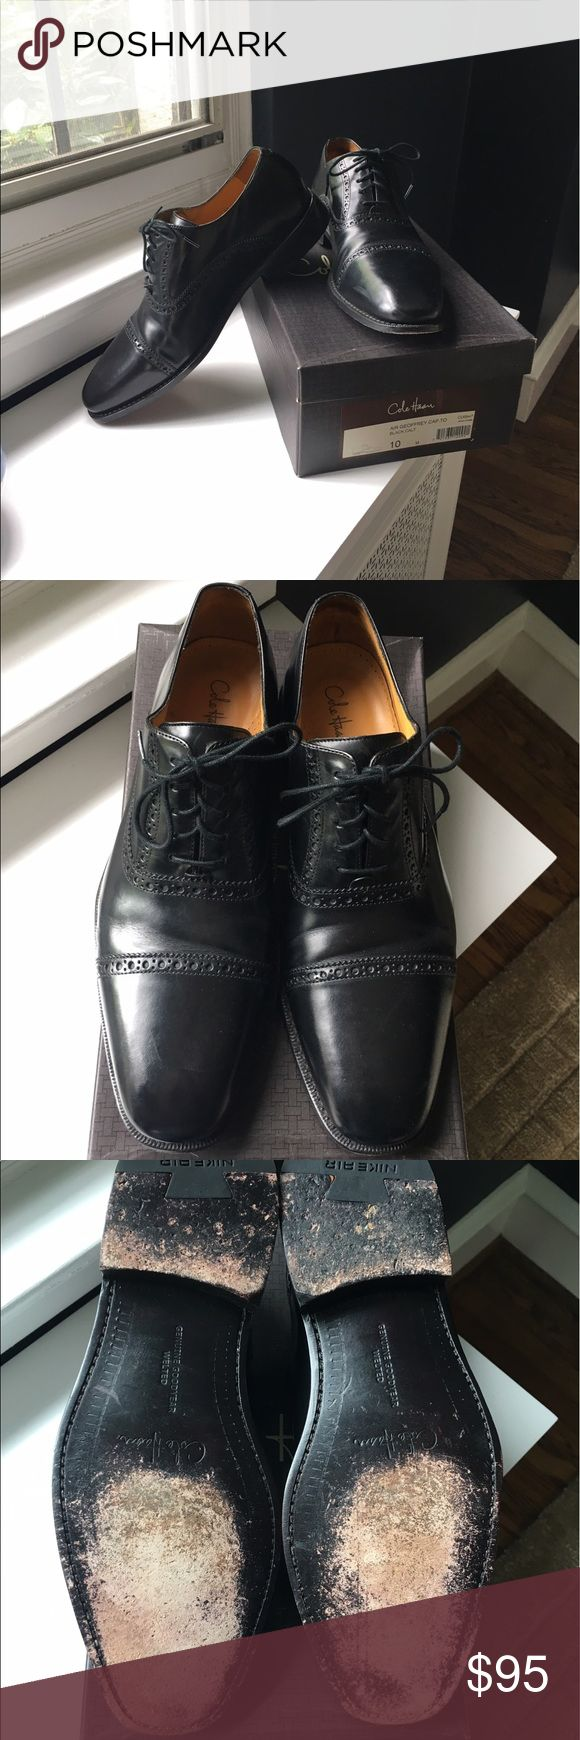 Cole Haan Air Geoffrey Black Cap Toe Shoes In excellent condition! Only worn a few times! Size 10 Cole Haan Air Greoffrey dress shoes! Very comfortable. Also have Mahogany ones for sale!  See closet. Cole Haan Shoes Oxfords & Derbys